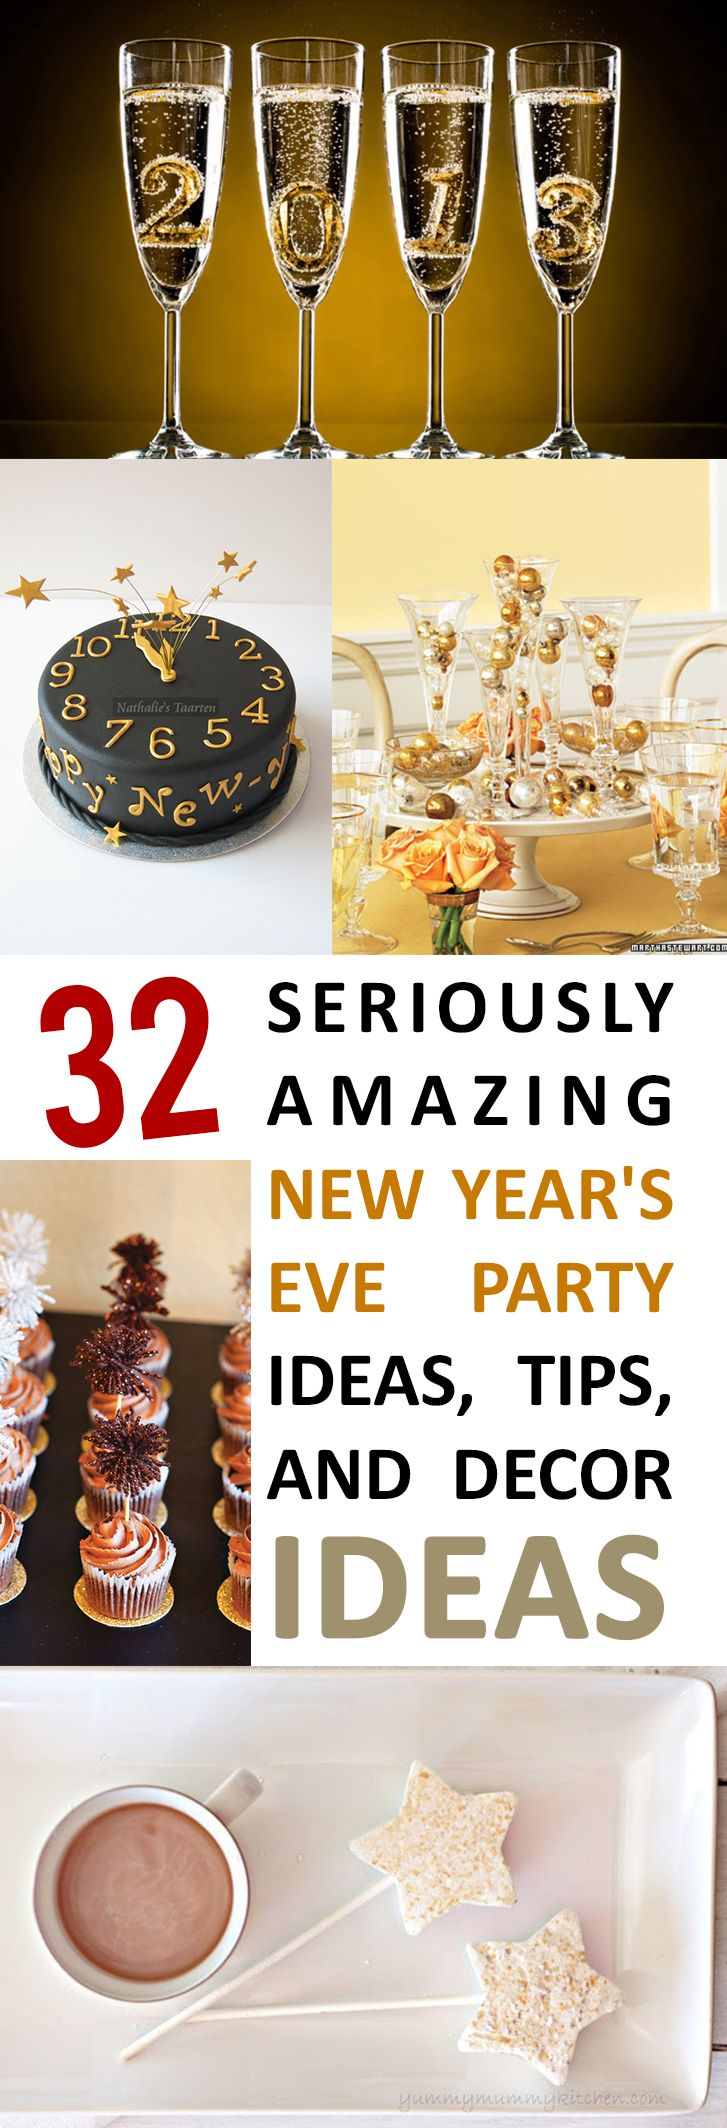 32 Seriously Amazing New Year's Eve Party Ideas, Tips, and Decor ...